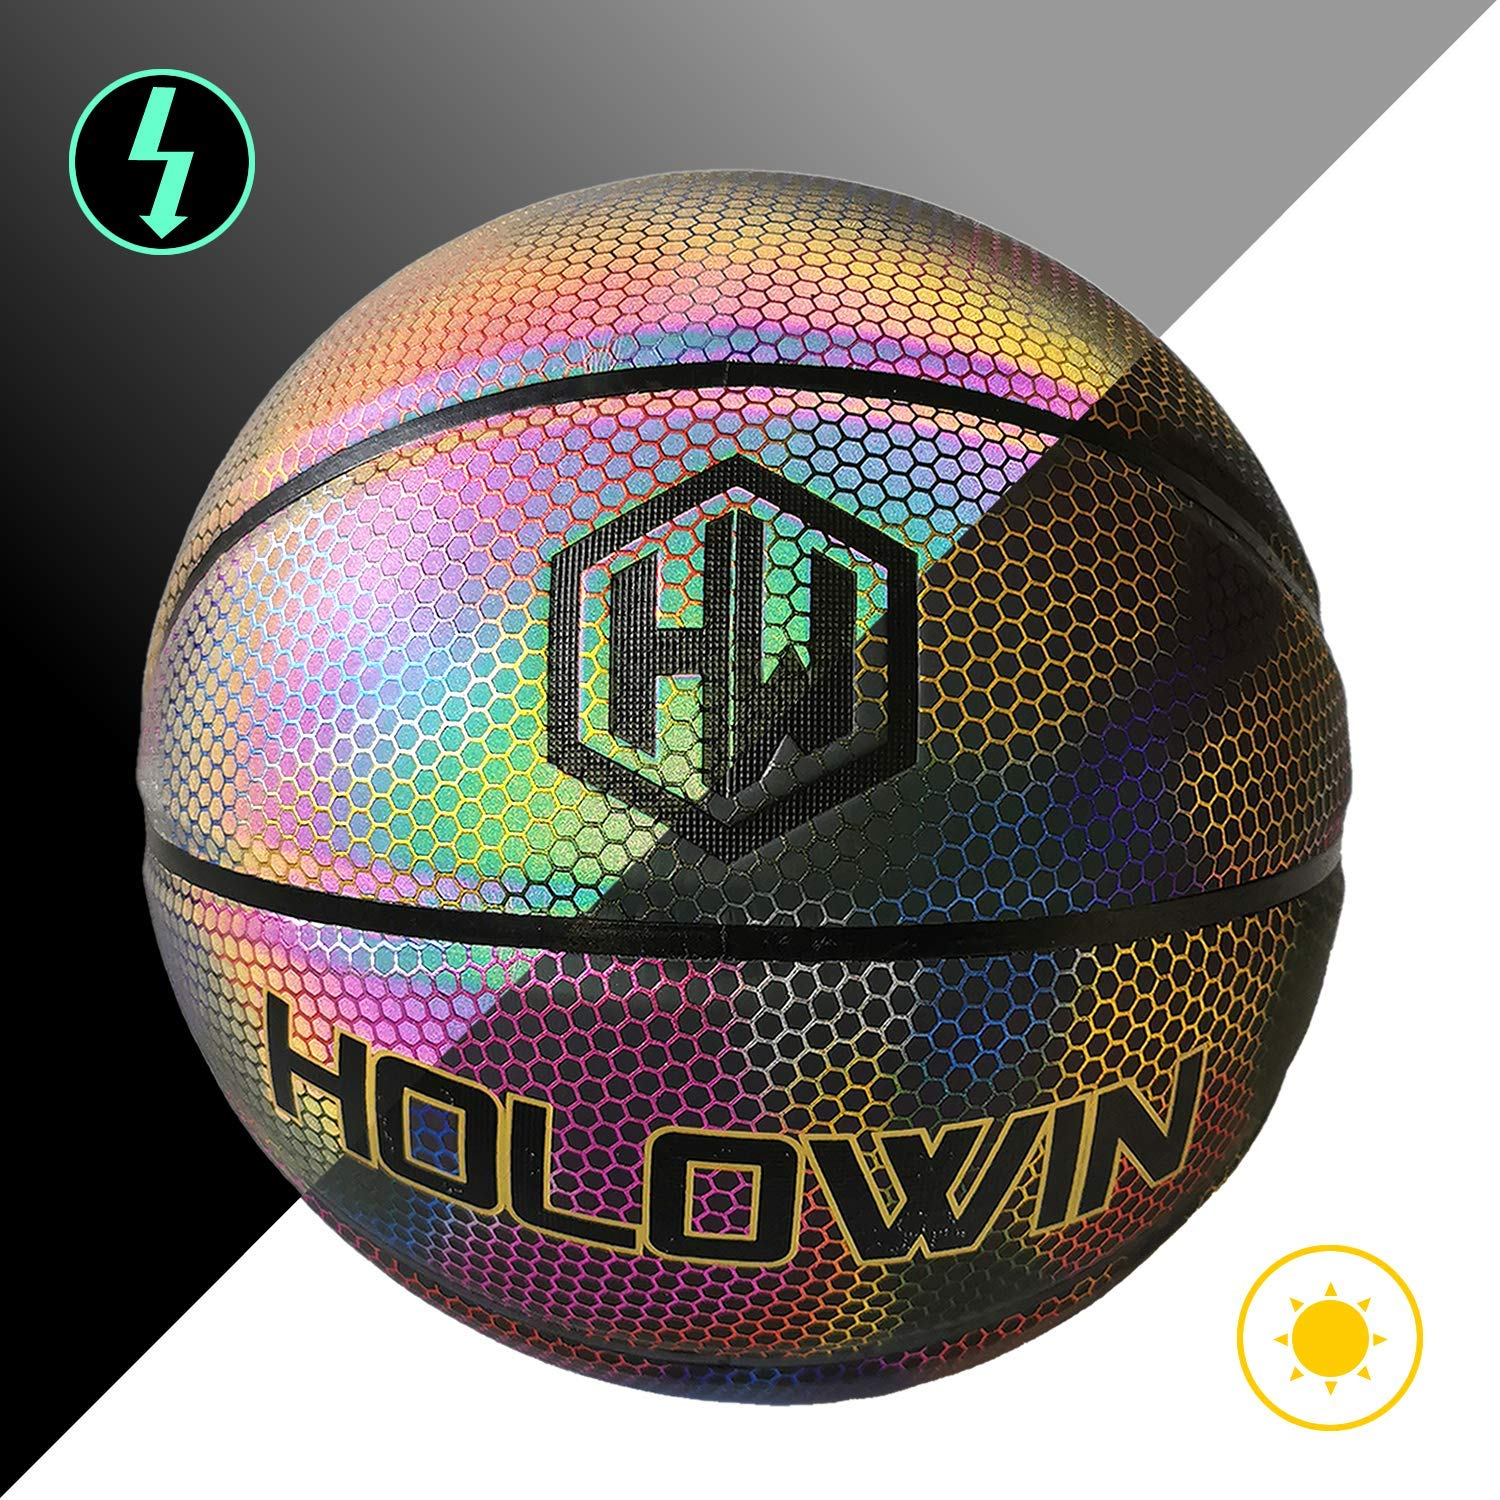 HOLOWIN Reflective Glowing Holographic Luminous Basket Ball for Night Game Perfect HoloHoops Gifts Toys